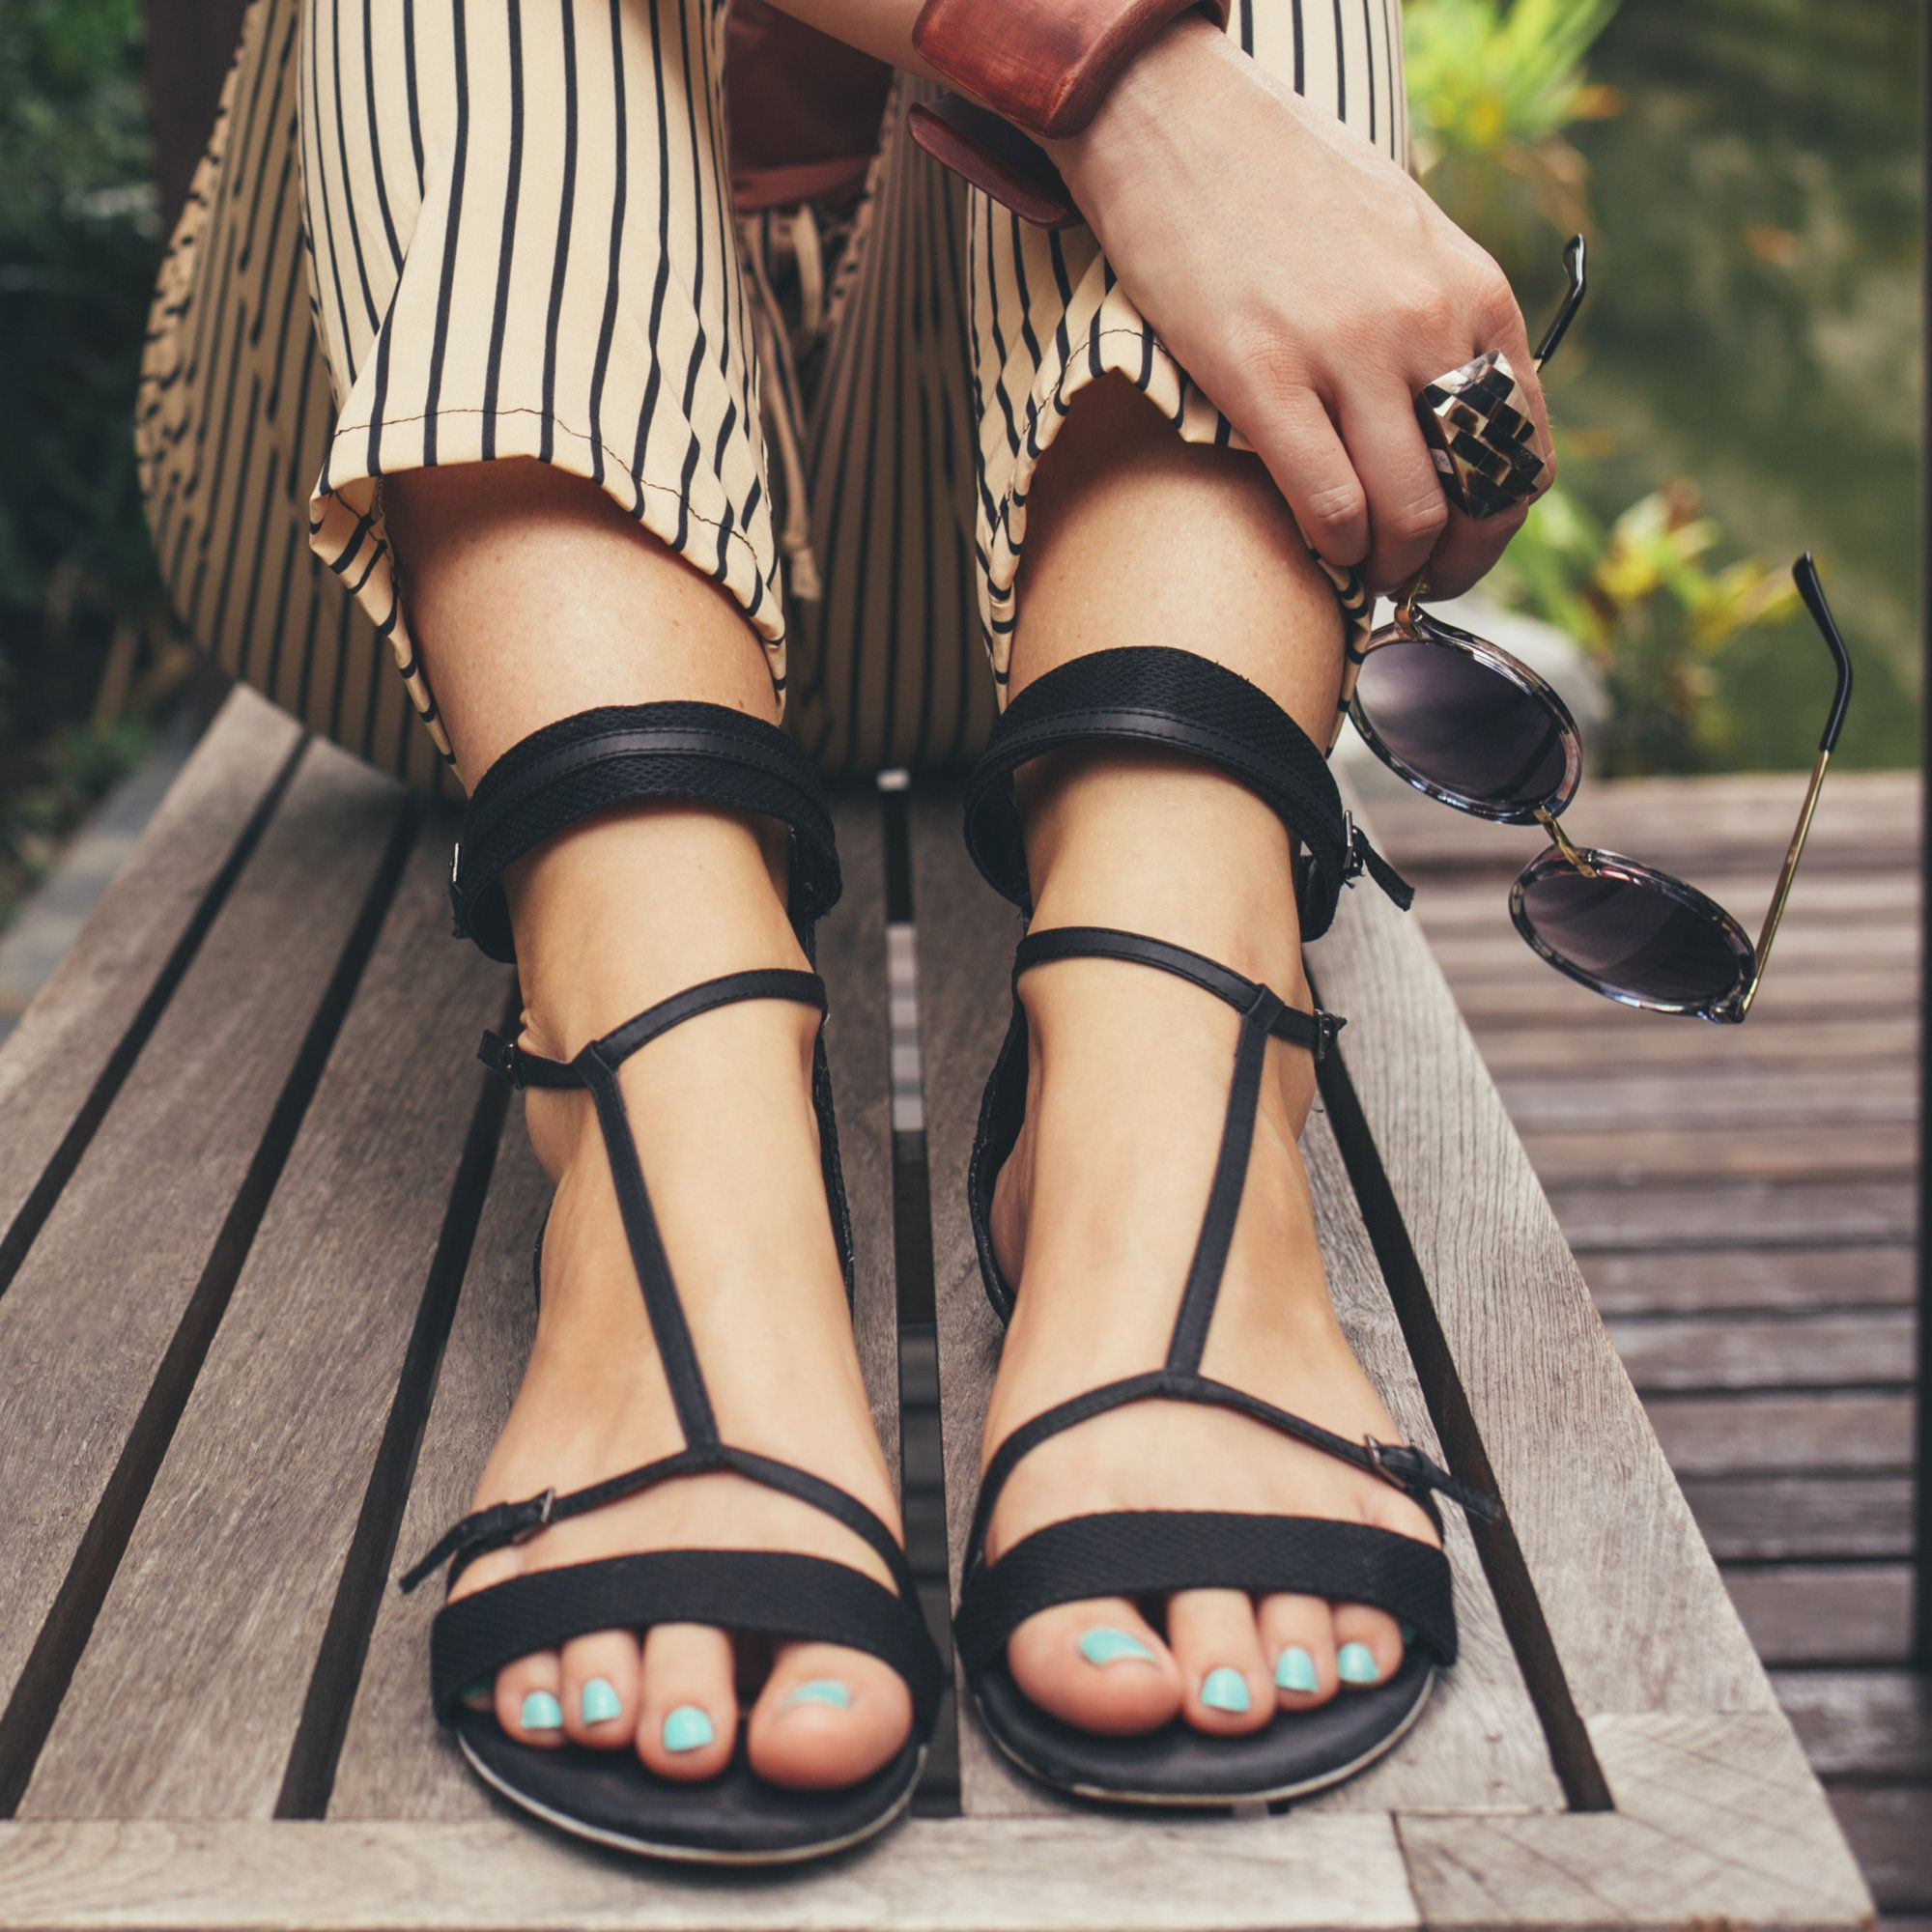 68f253b58d Score a pair of doctor-approved kicks to keep your feet healthy all season  long. Here are the best sandals for your feet, according to podiatrists.